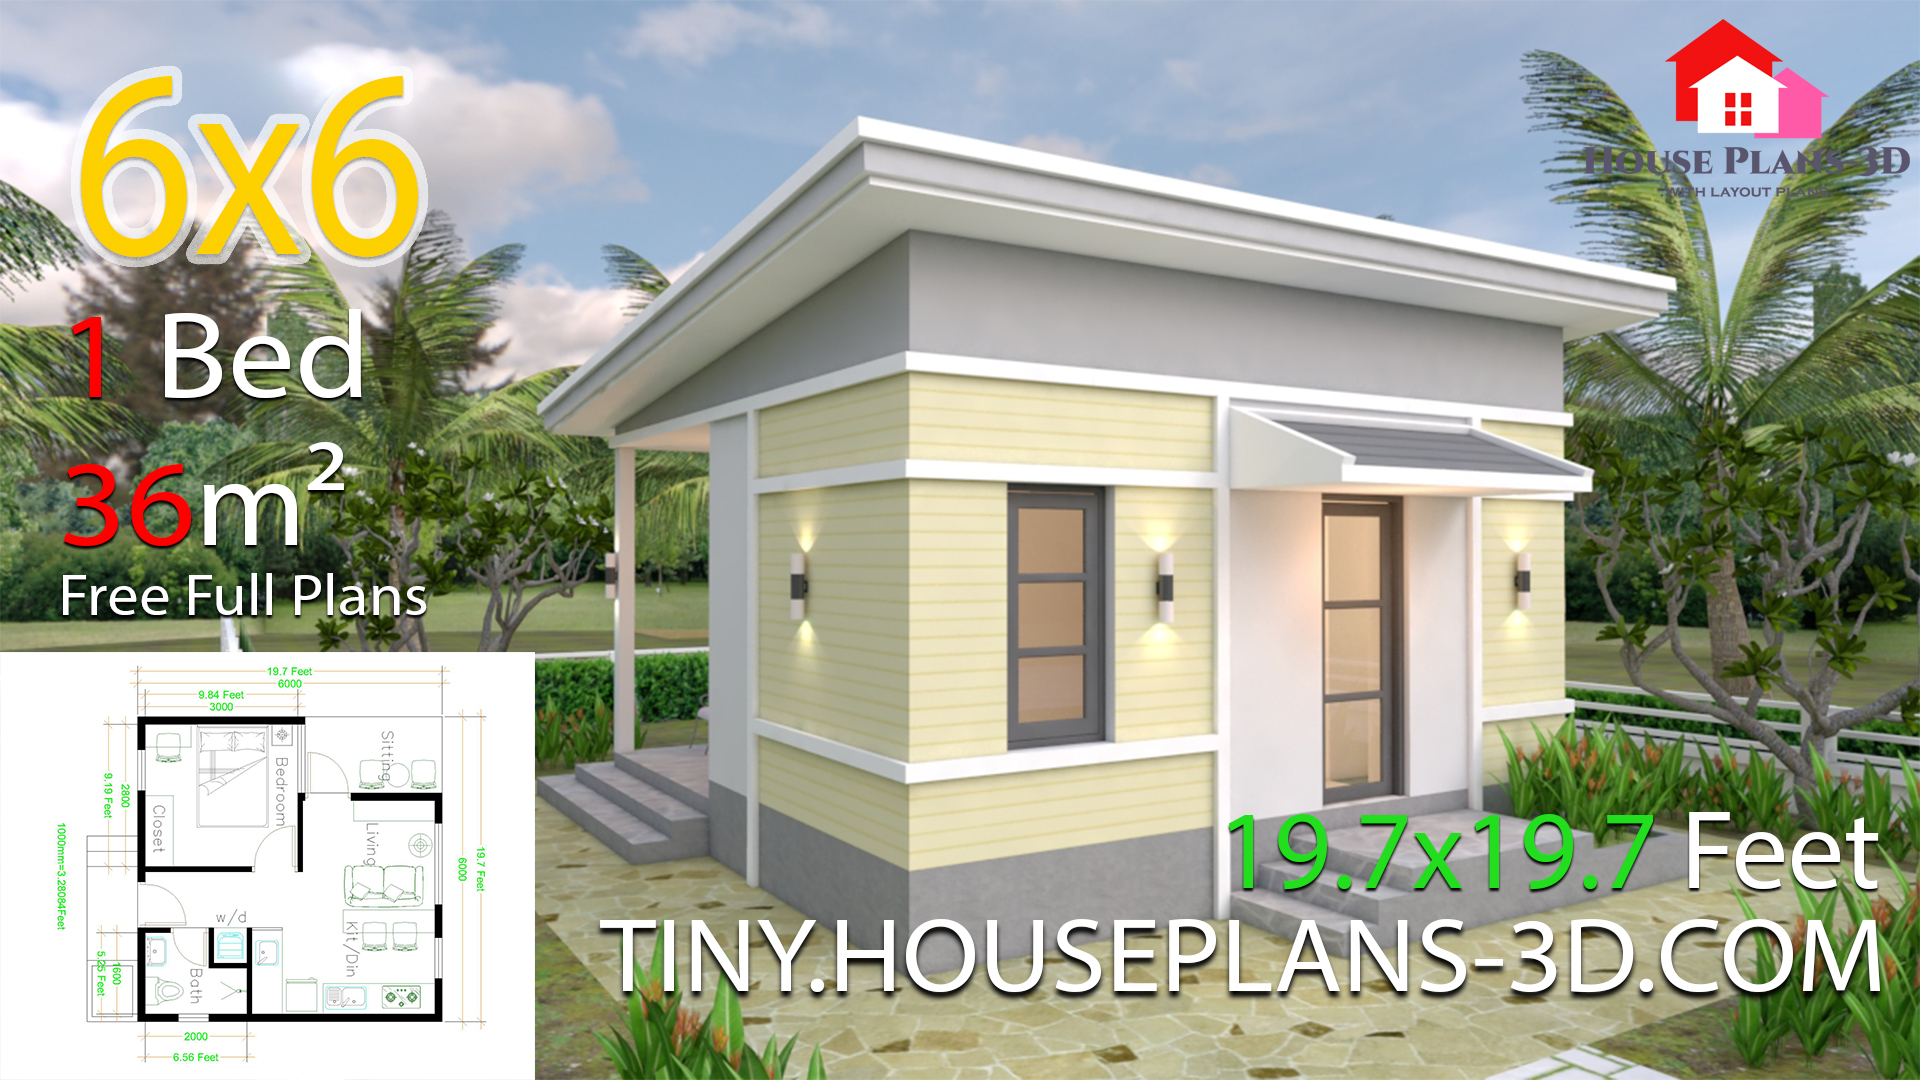 One Bedroom House Design Plans 6x6 With Shed Roof Samphoas Plan